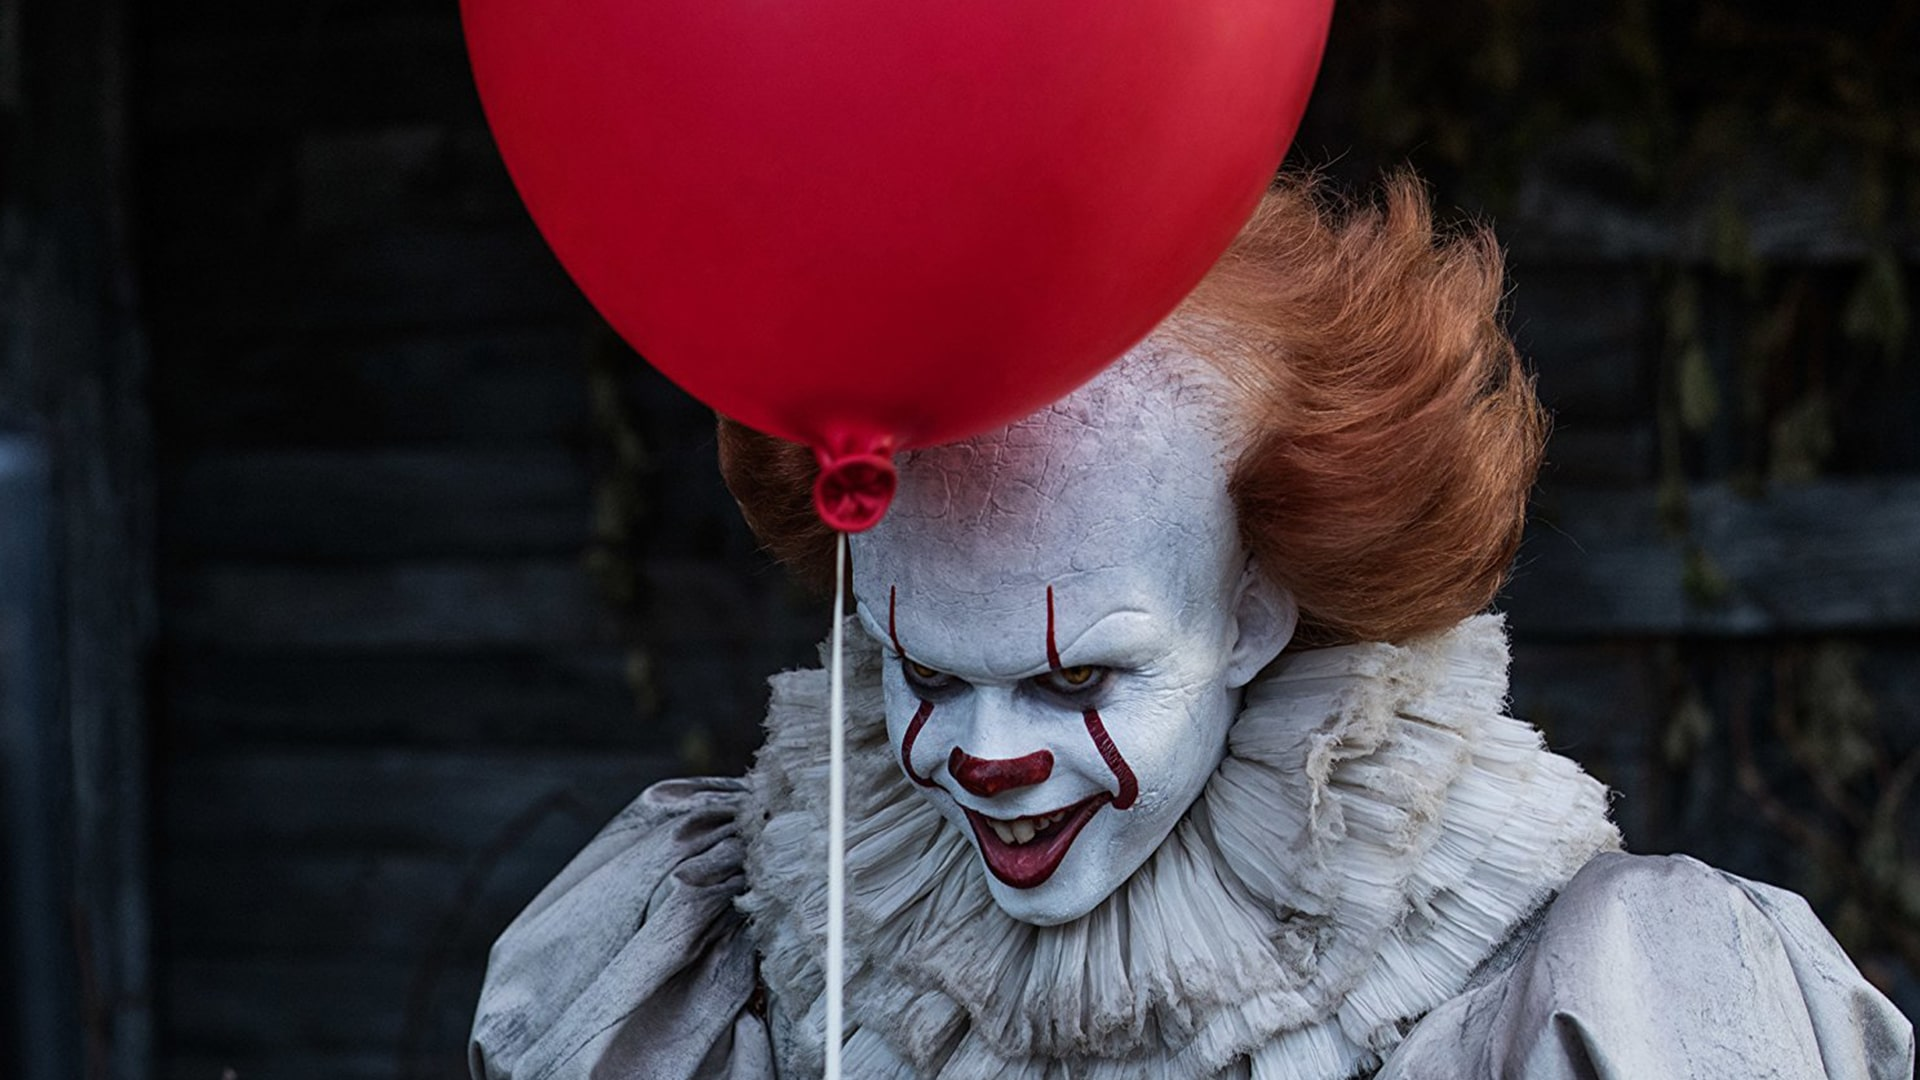 It: What Could We Expect in Part 2?